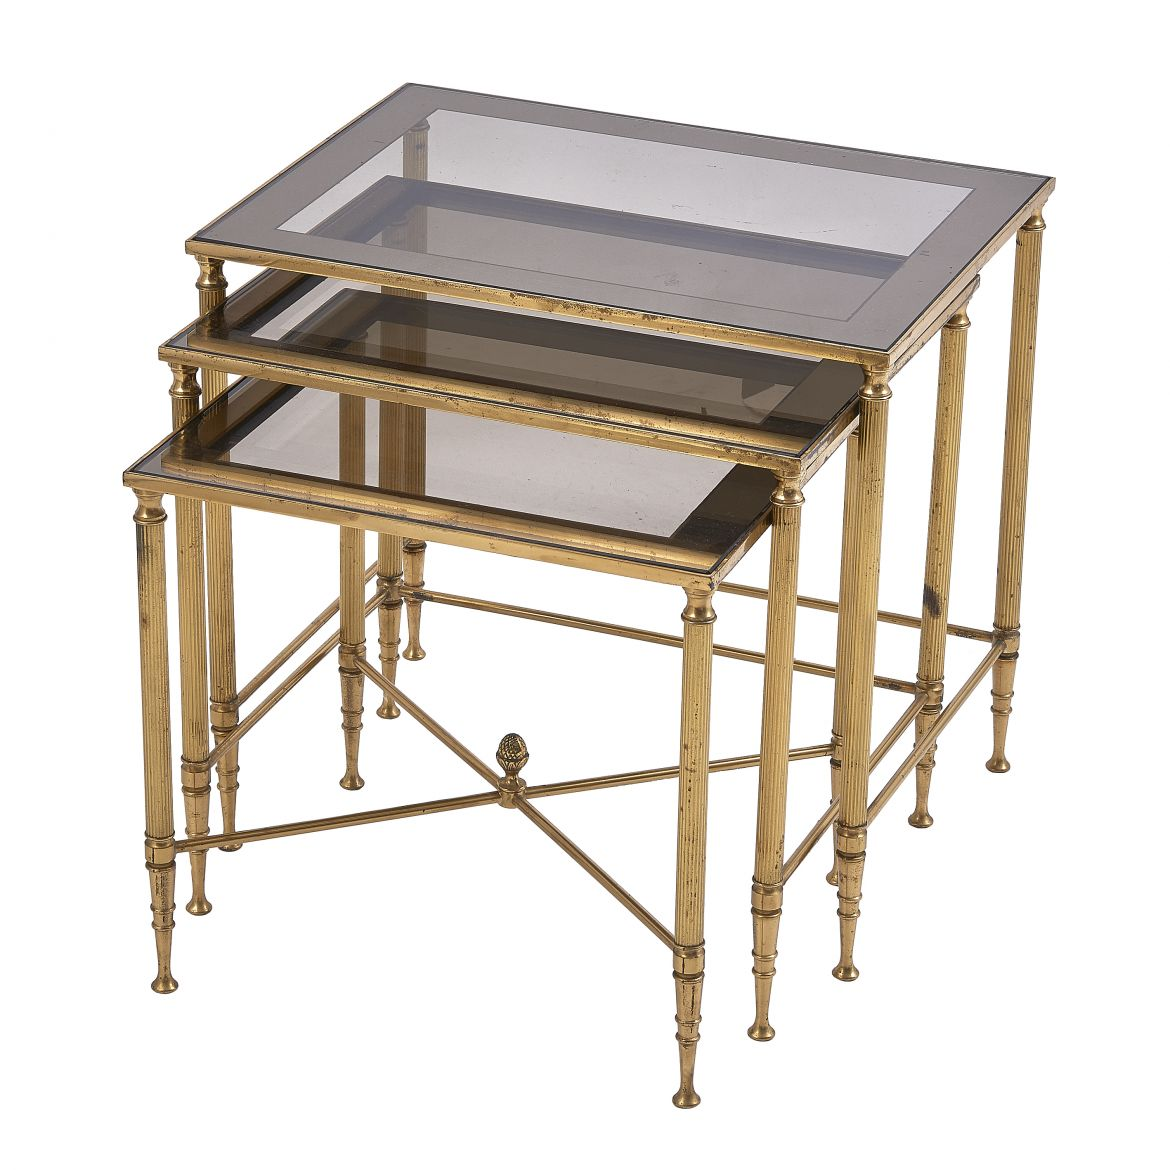 Nest of brass Tables